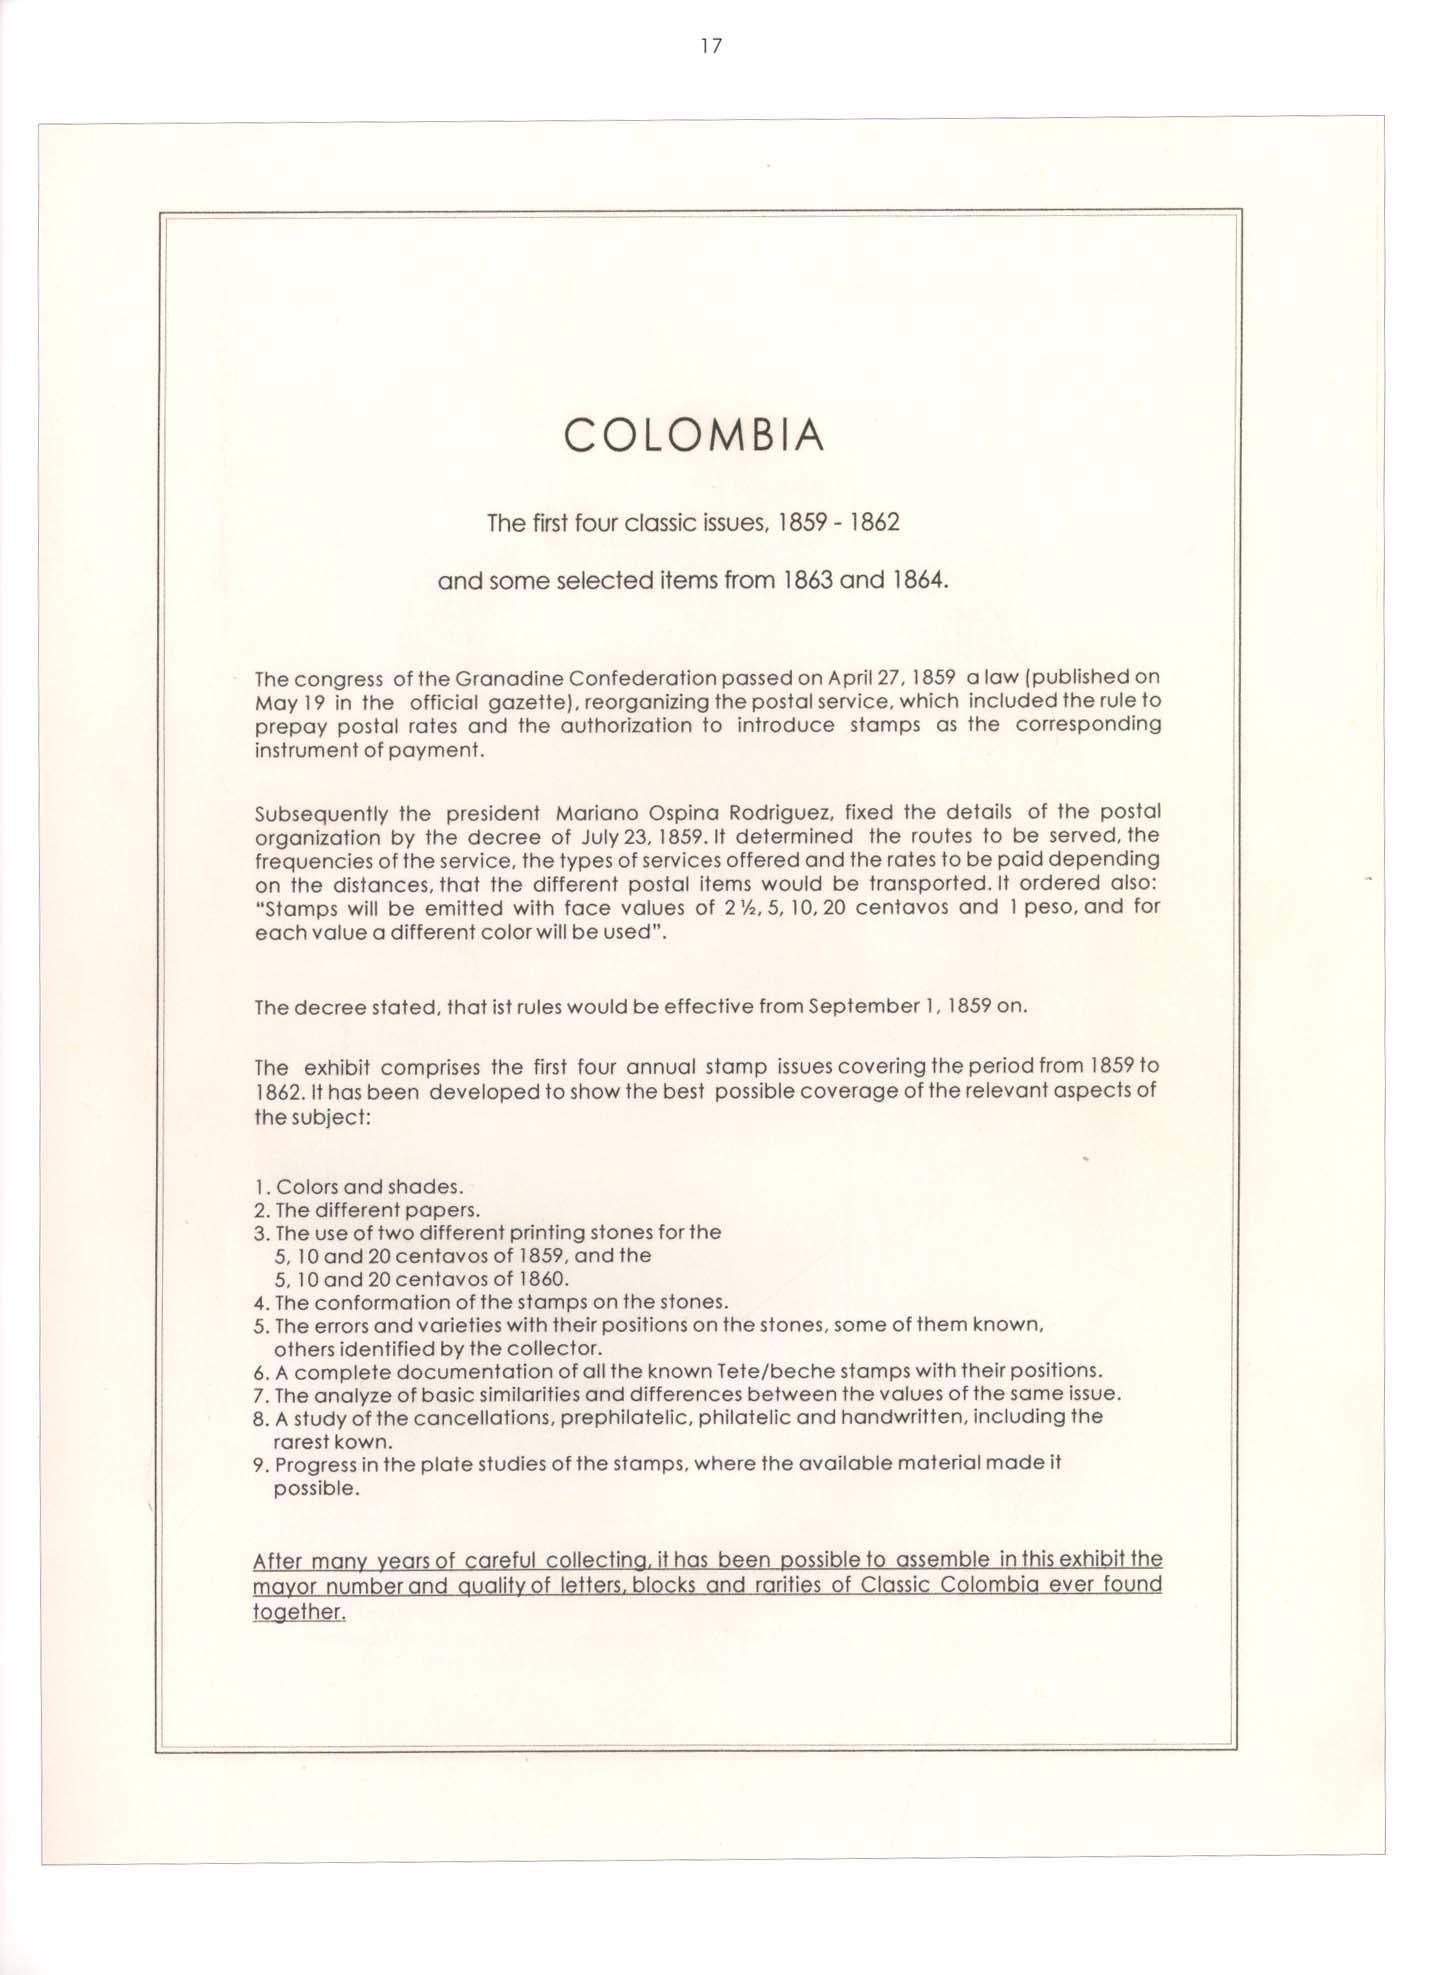 Vol. 35: Colombia 1859-1864 • The Dr. Hugo Goeggel Collection